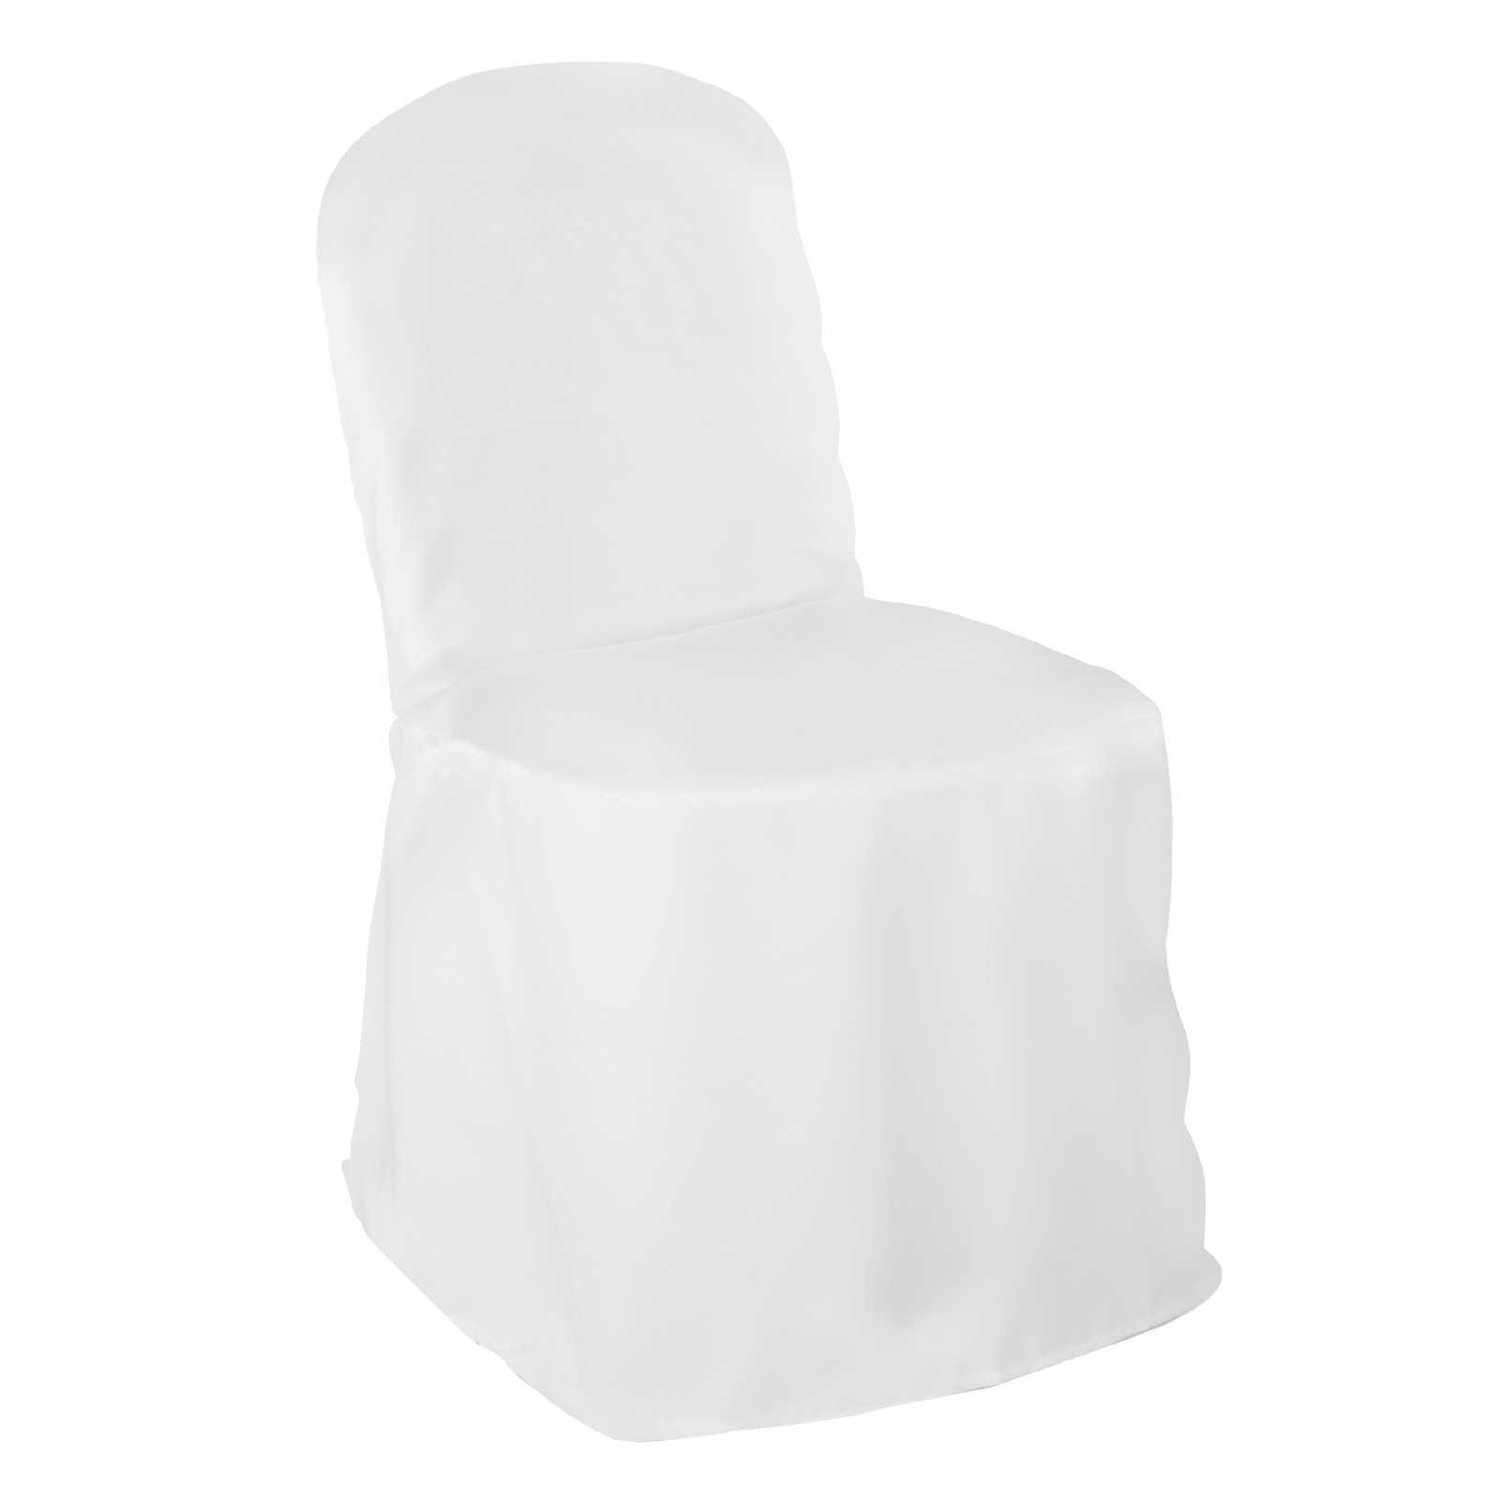 Craft and Party Premium Polyester Chair Cover - for Wedding or Party Use - White - set of 100 (Banquet Chair Cover)